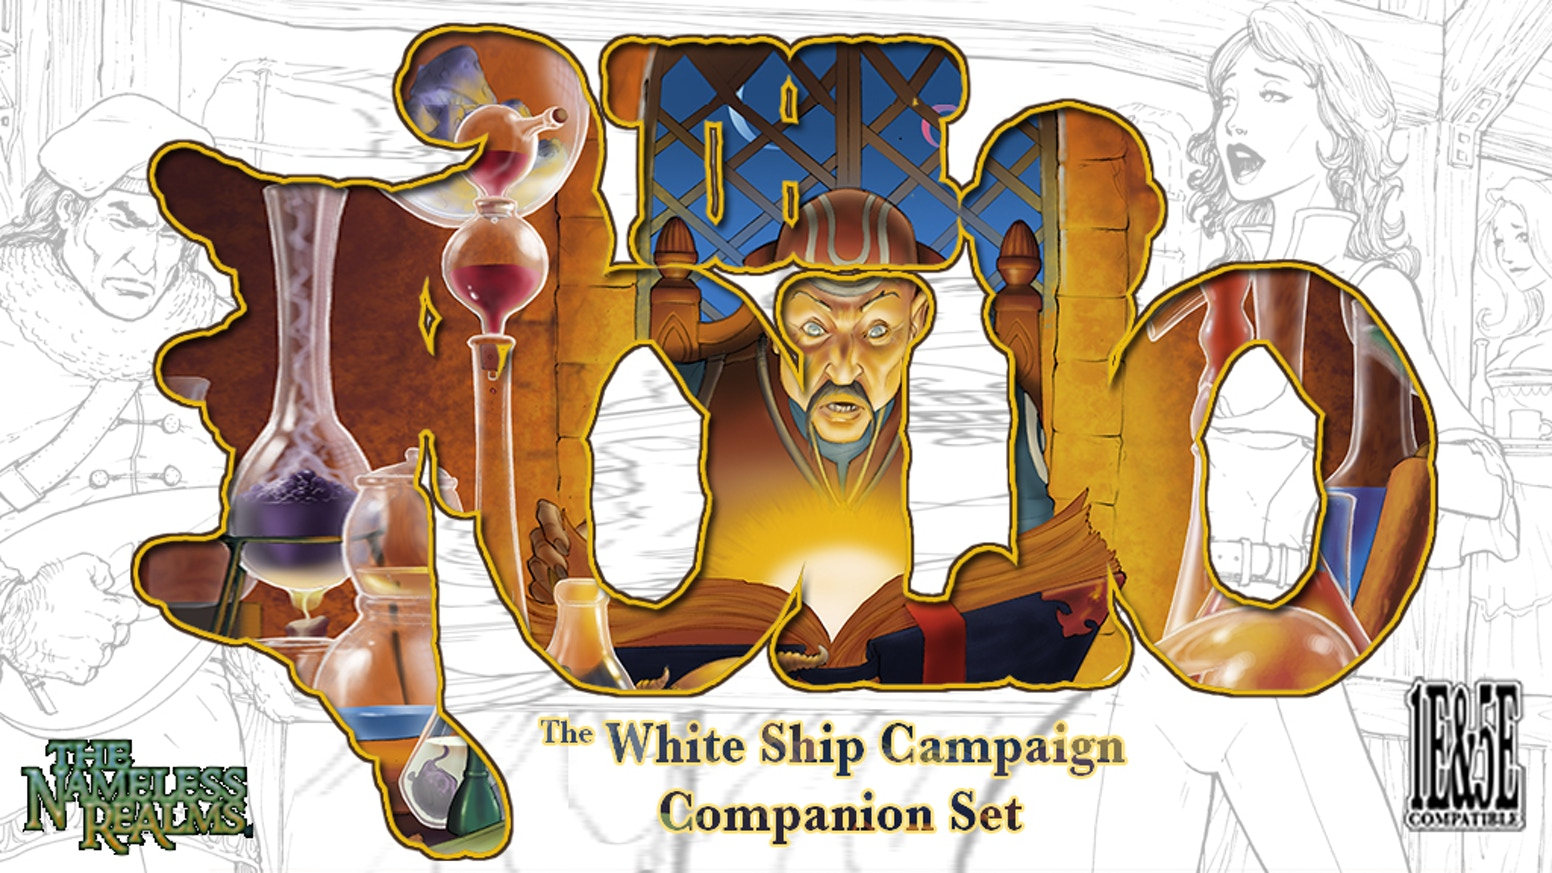 The White Ship Campaign Companion Set by Scott Taylor